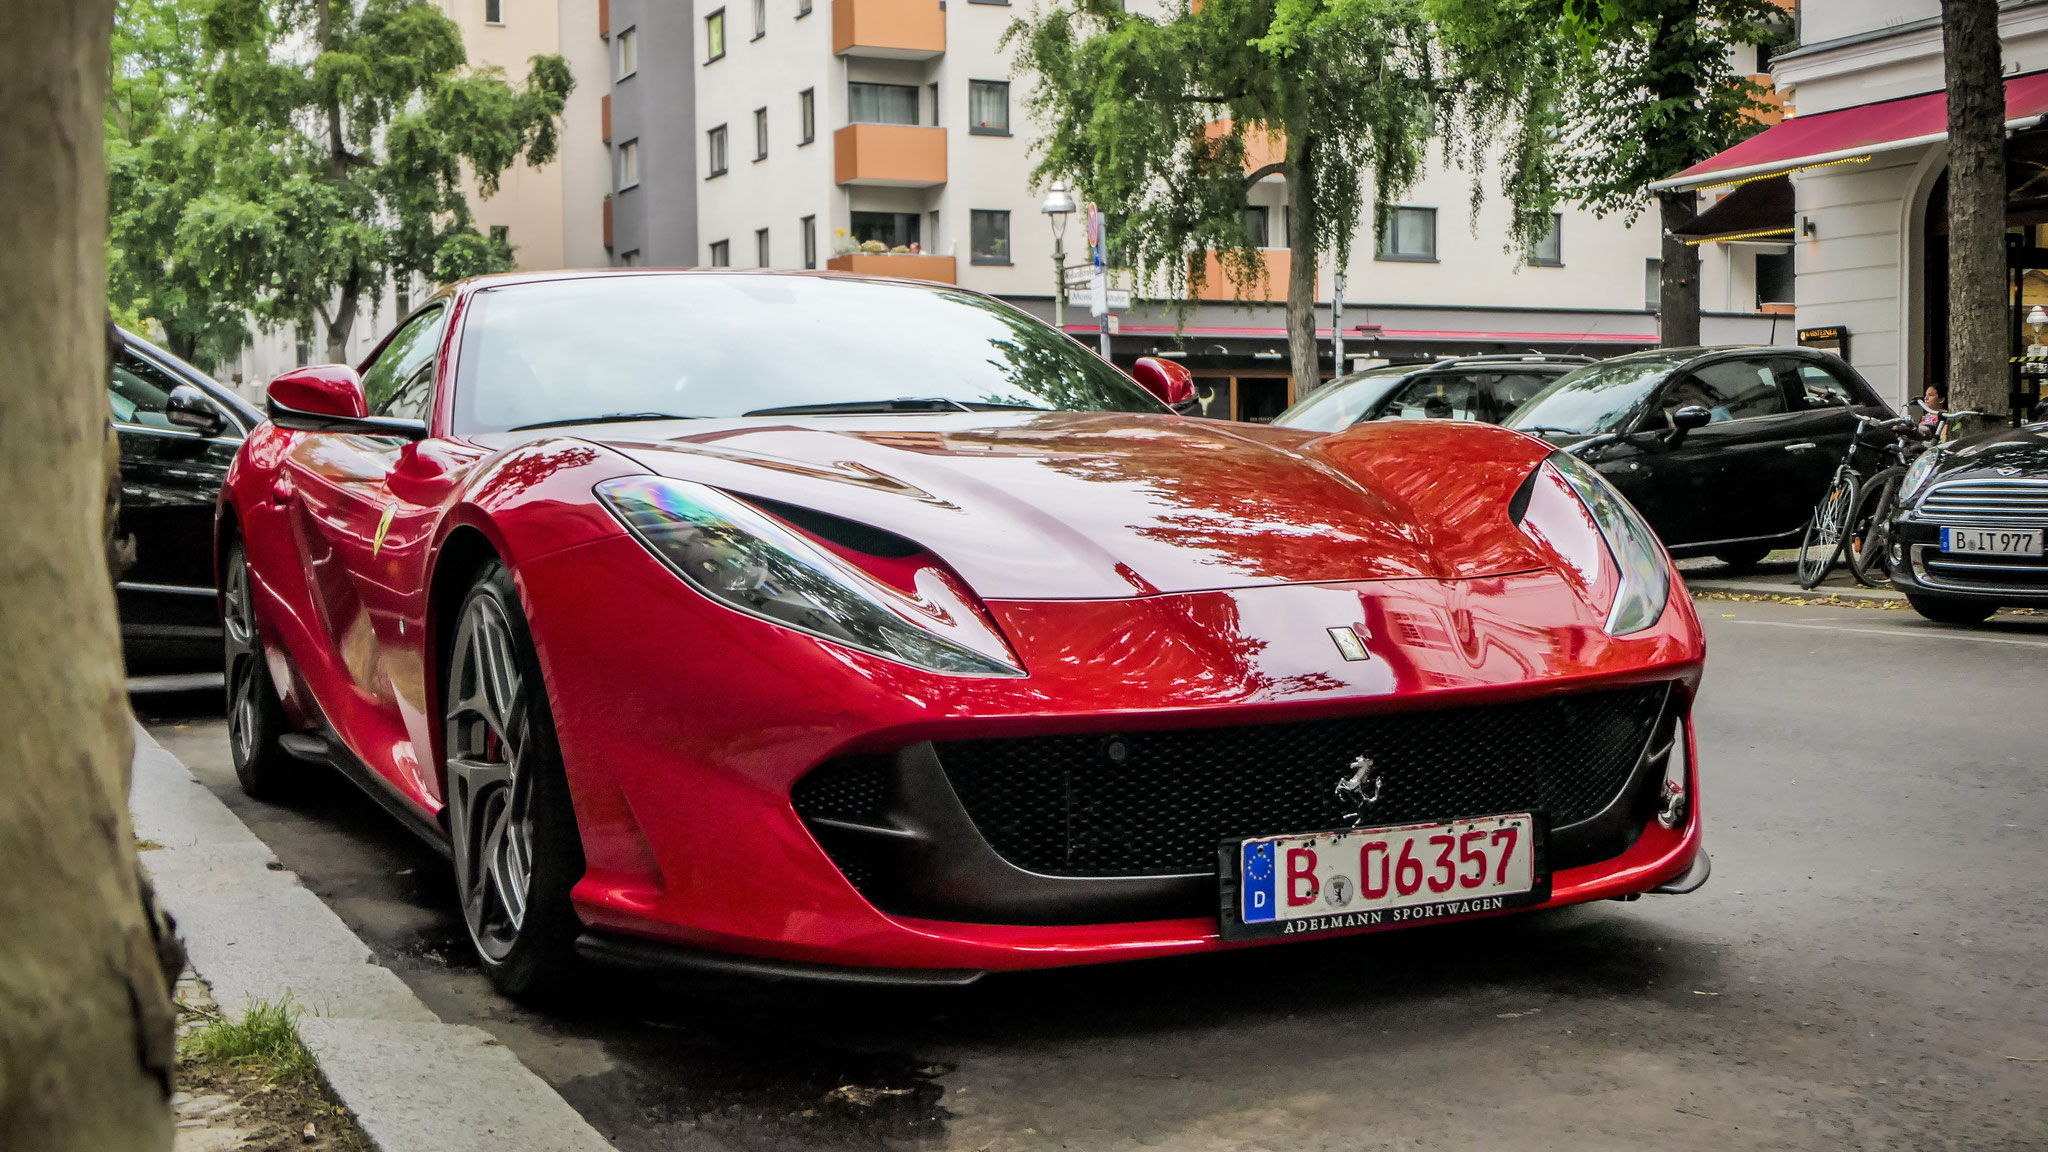 Ferrari 812 Superfast - B-06357